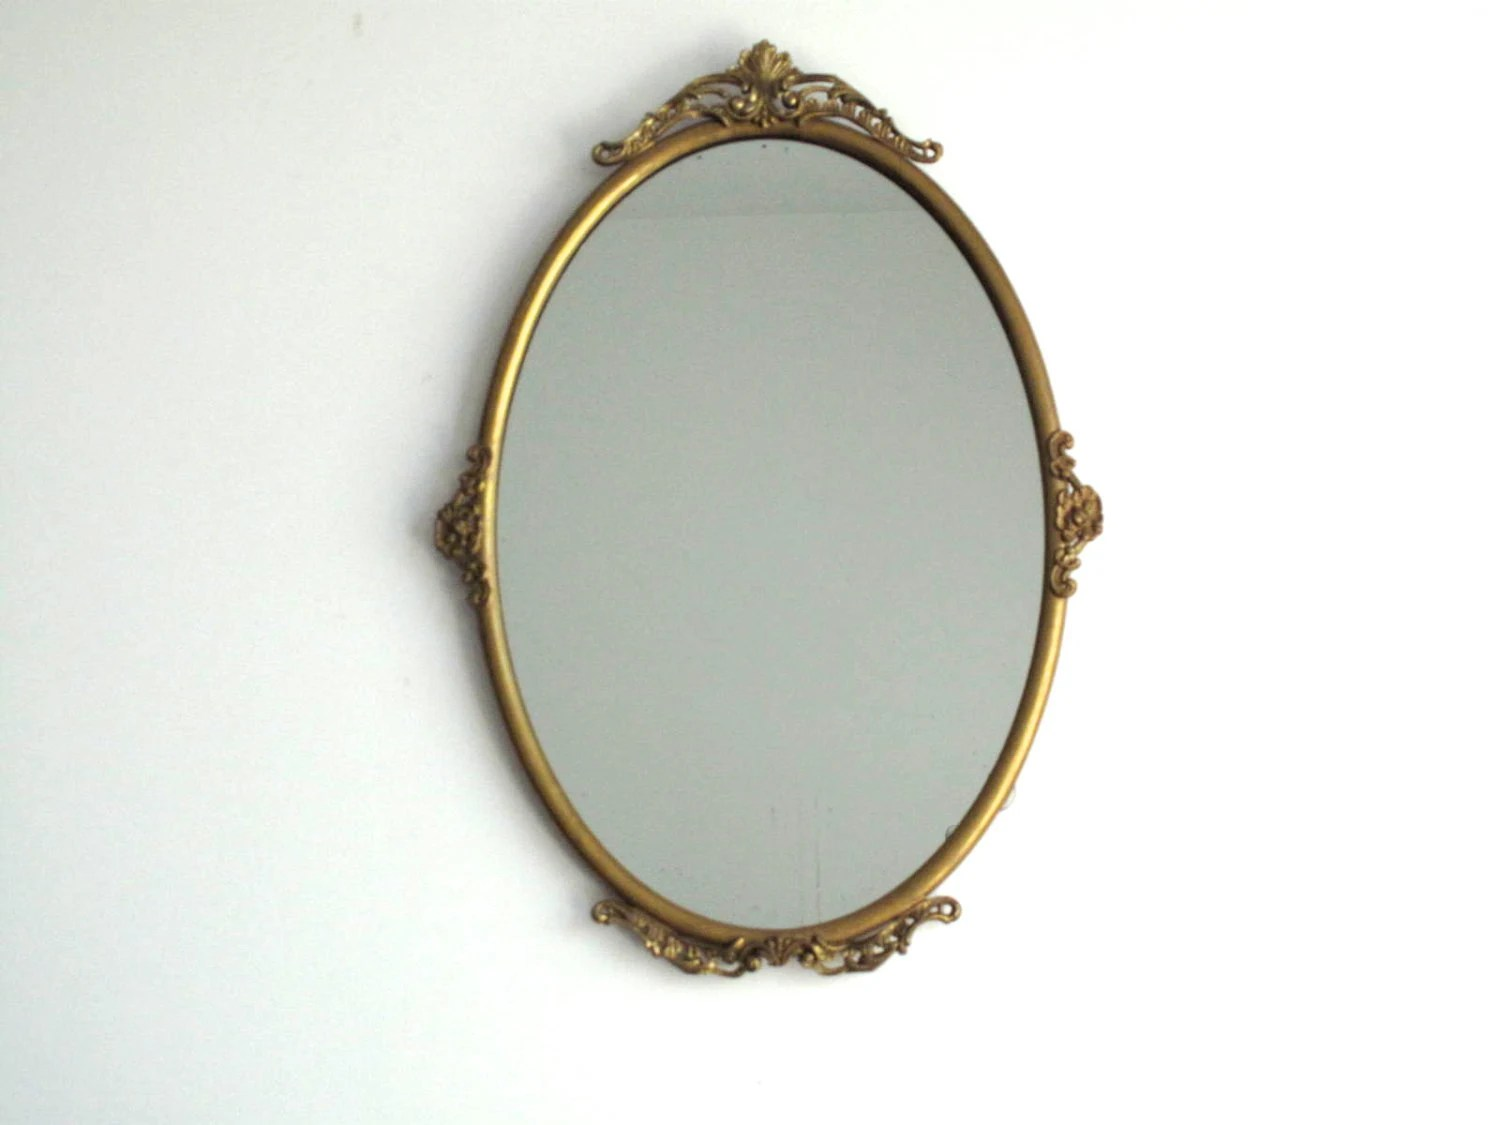 Vintage Gold Wall Mirror With Ornate Metal By SnapshotVintage